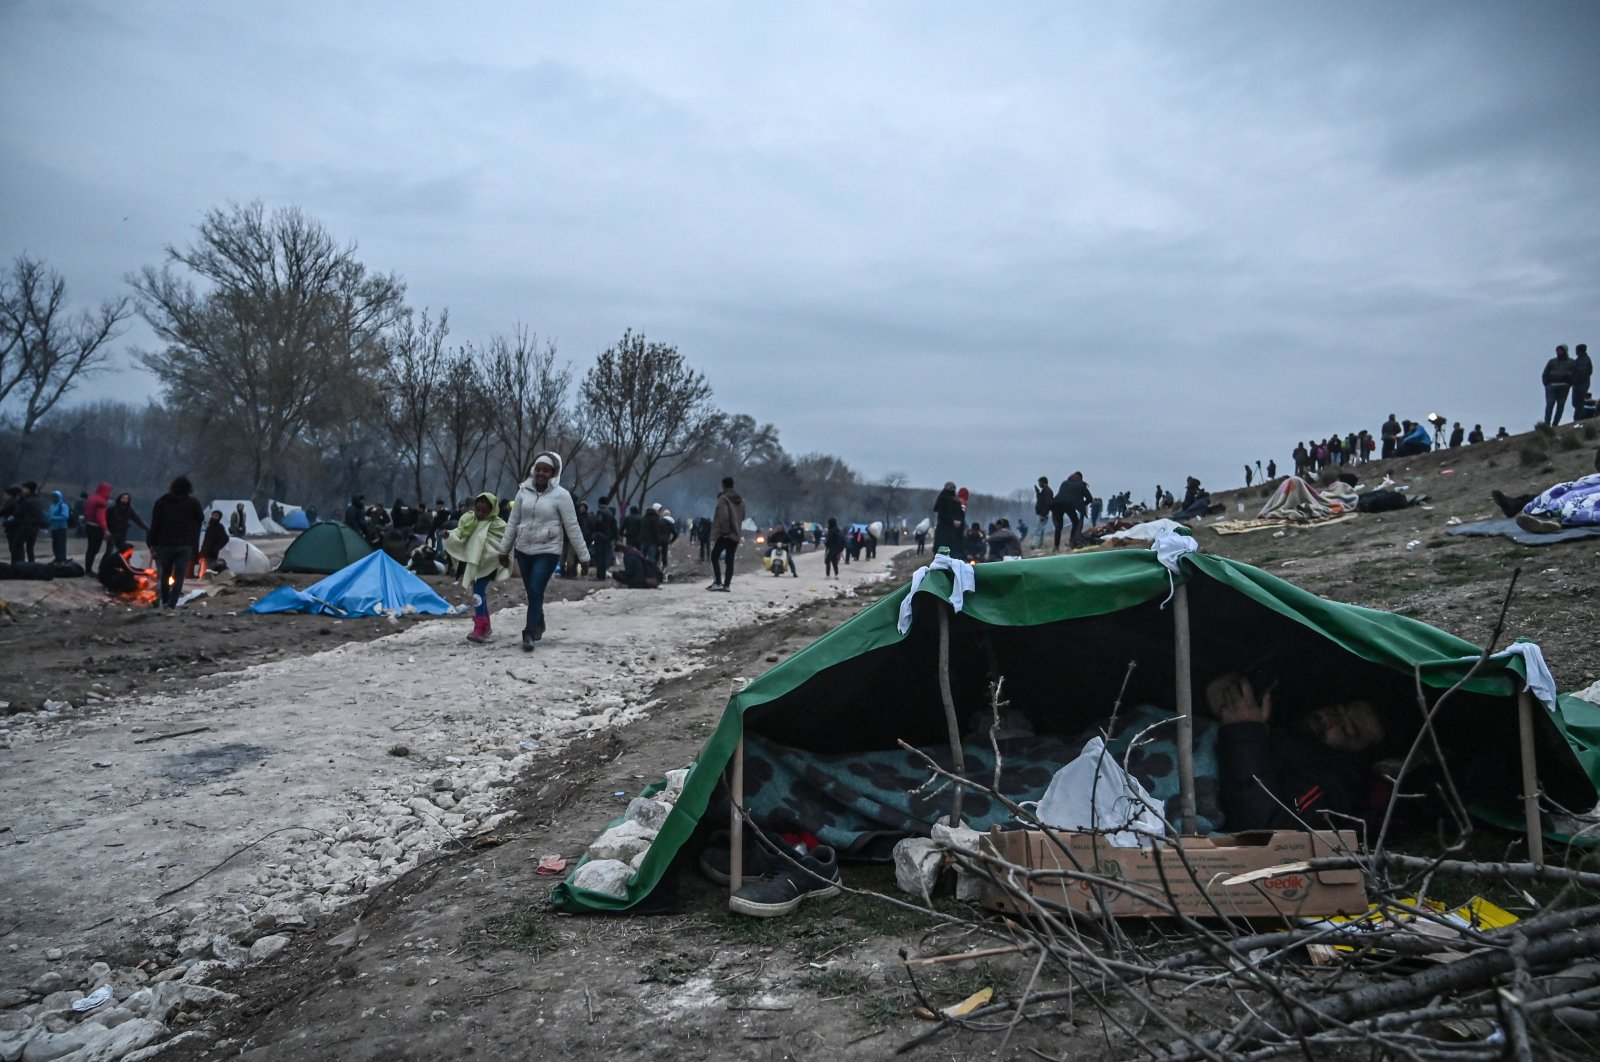 A migrant rests under a makeshift tent near the Tunca river as migrants and refugees wait to resume their efforts to cross the Greek border near the Pazarkule border gate in the city of Edirne, northwestern Turkey, on March 5, 2020. (AFP Photo)